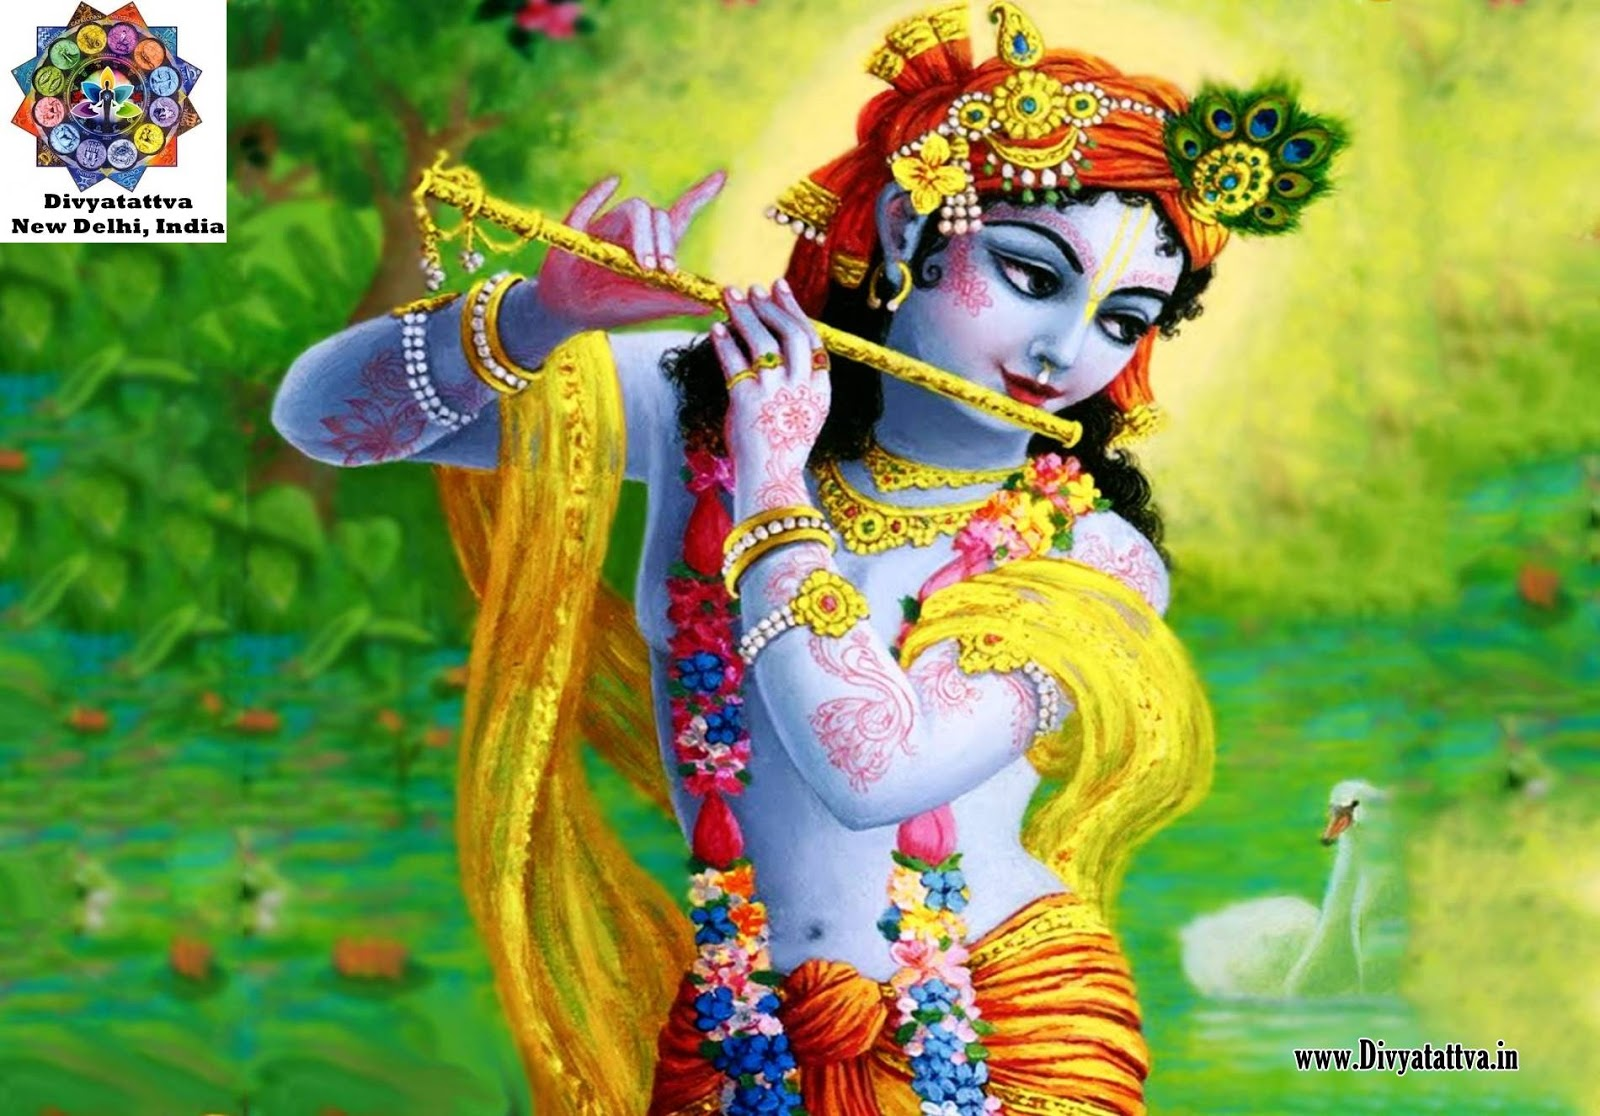 lord krishna radha hindu god spiritual hinduism govinda wallpaper backgrund images www.divyatattva.in